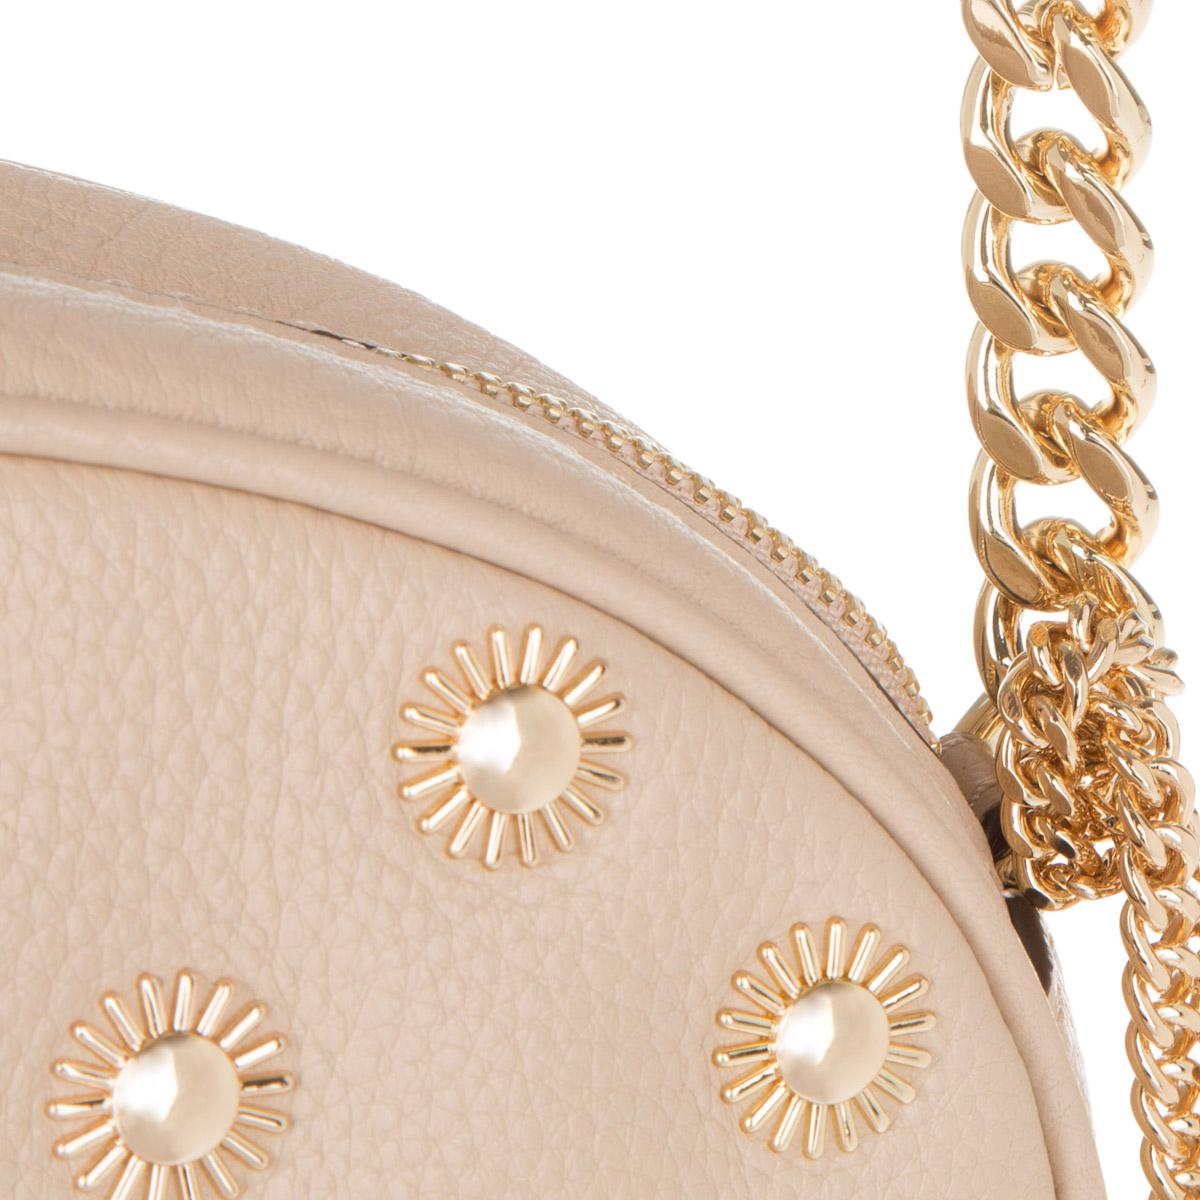 Michael Kors Leather Ginny Studded Md Messenger Crossbody Bag Oyster in Beige (Natural)